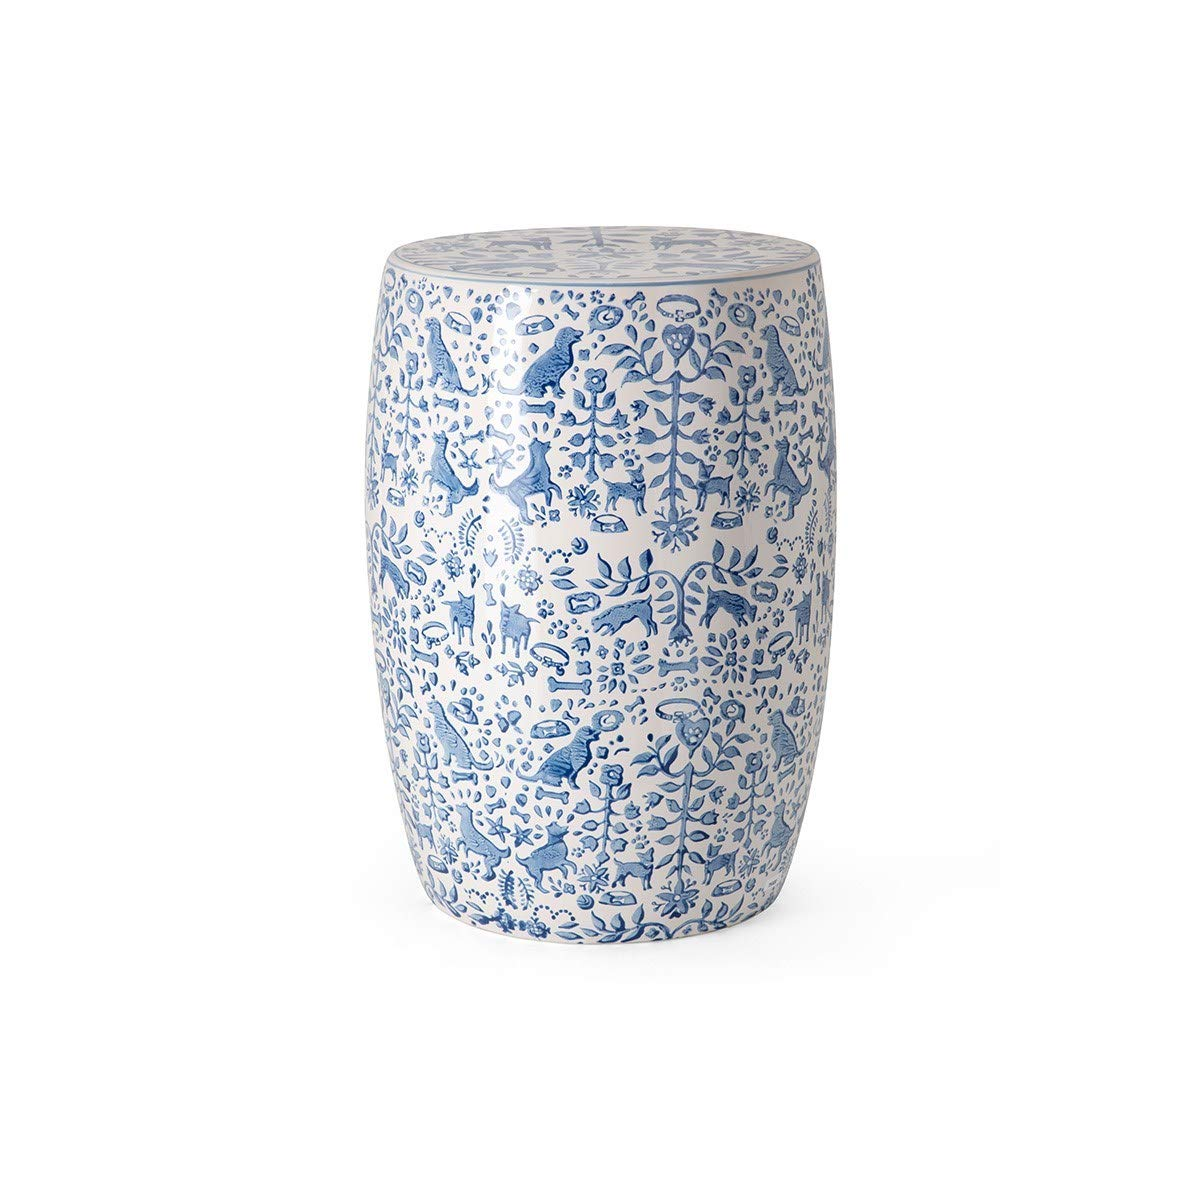 CC Home Furnishings 18'' Blue and White Hand-Painted Textile Patterns Garden Stool